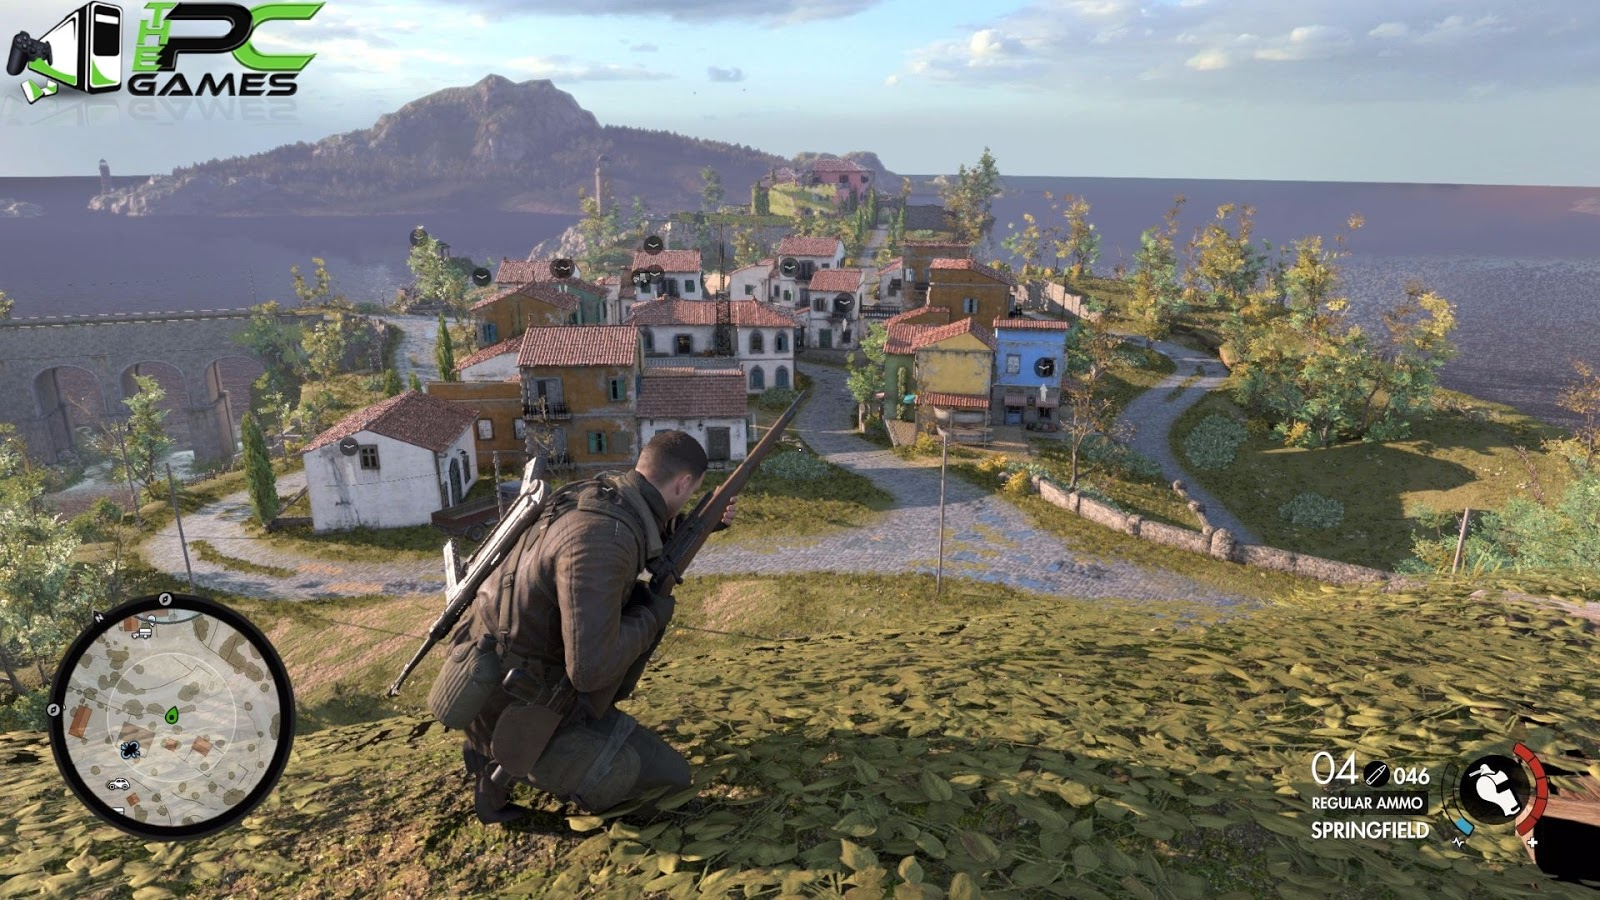 Sniper Elite 4 Highly Compressed Pc Games 13m B Fully